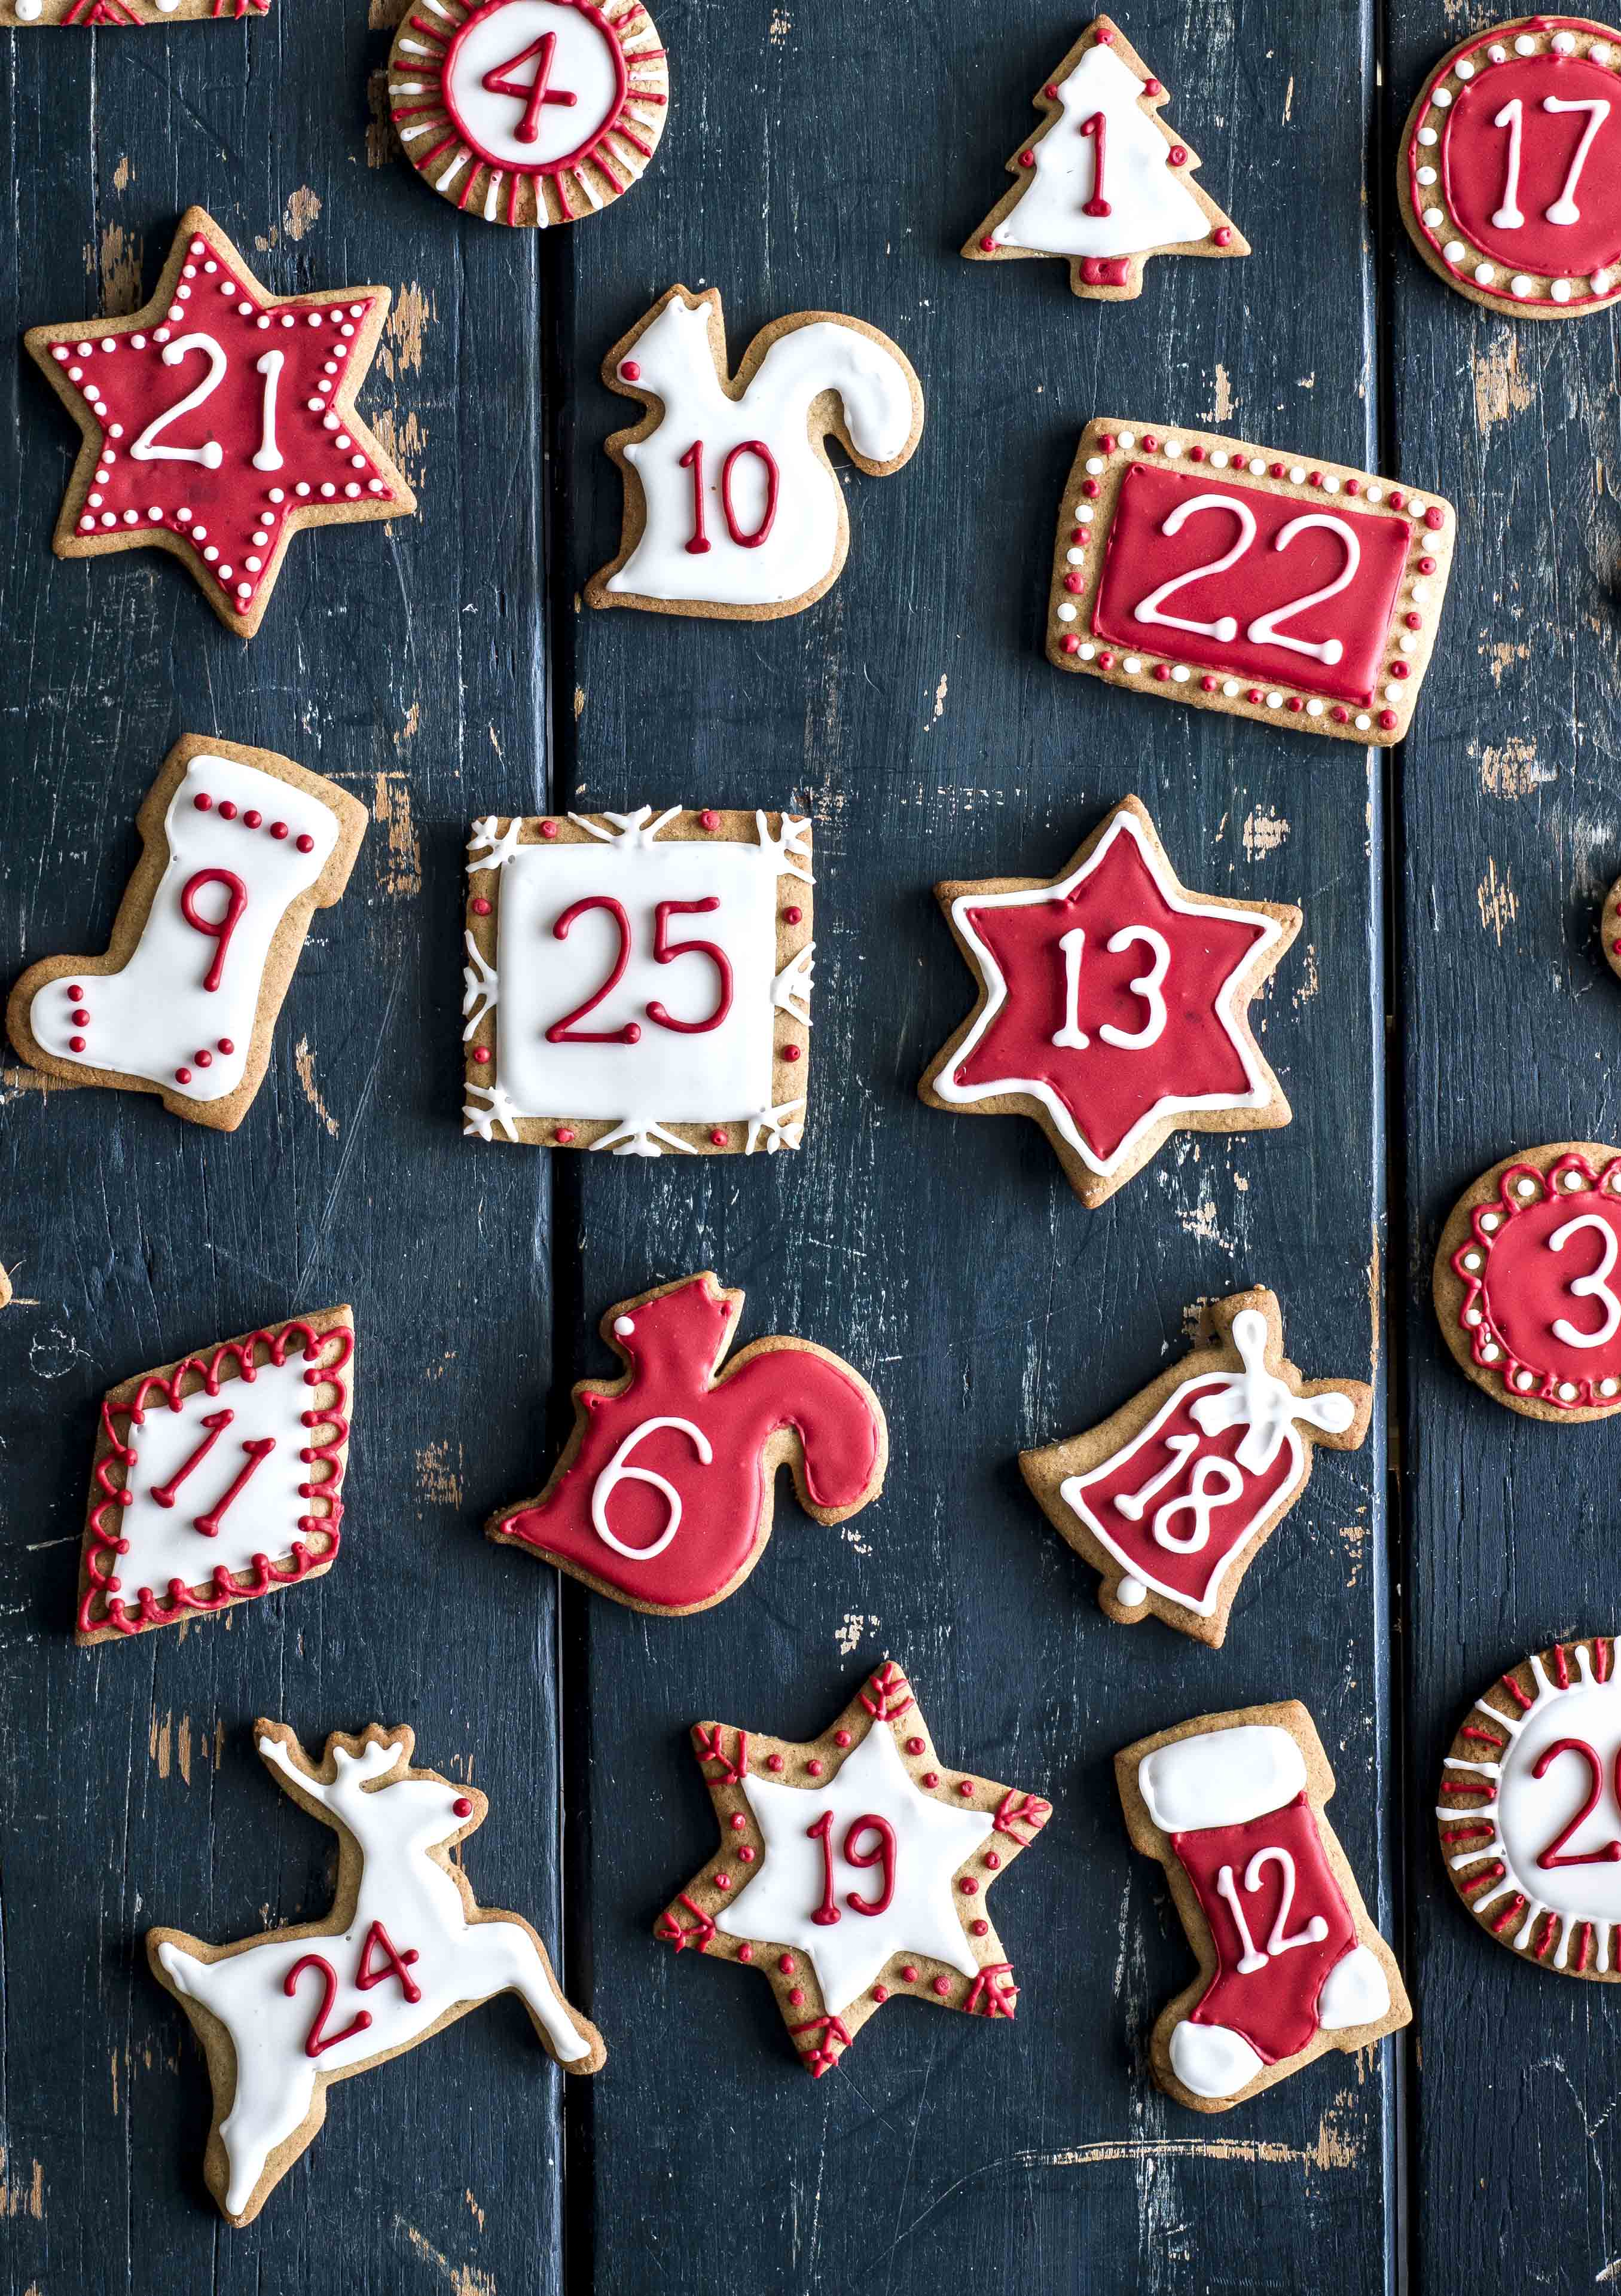 Christmas Advent Biscuits Recipe - Different Christmas shapes with number and with red and white icing sugar